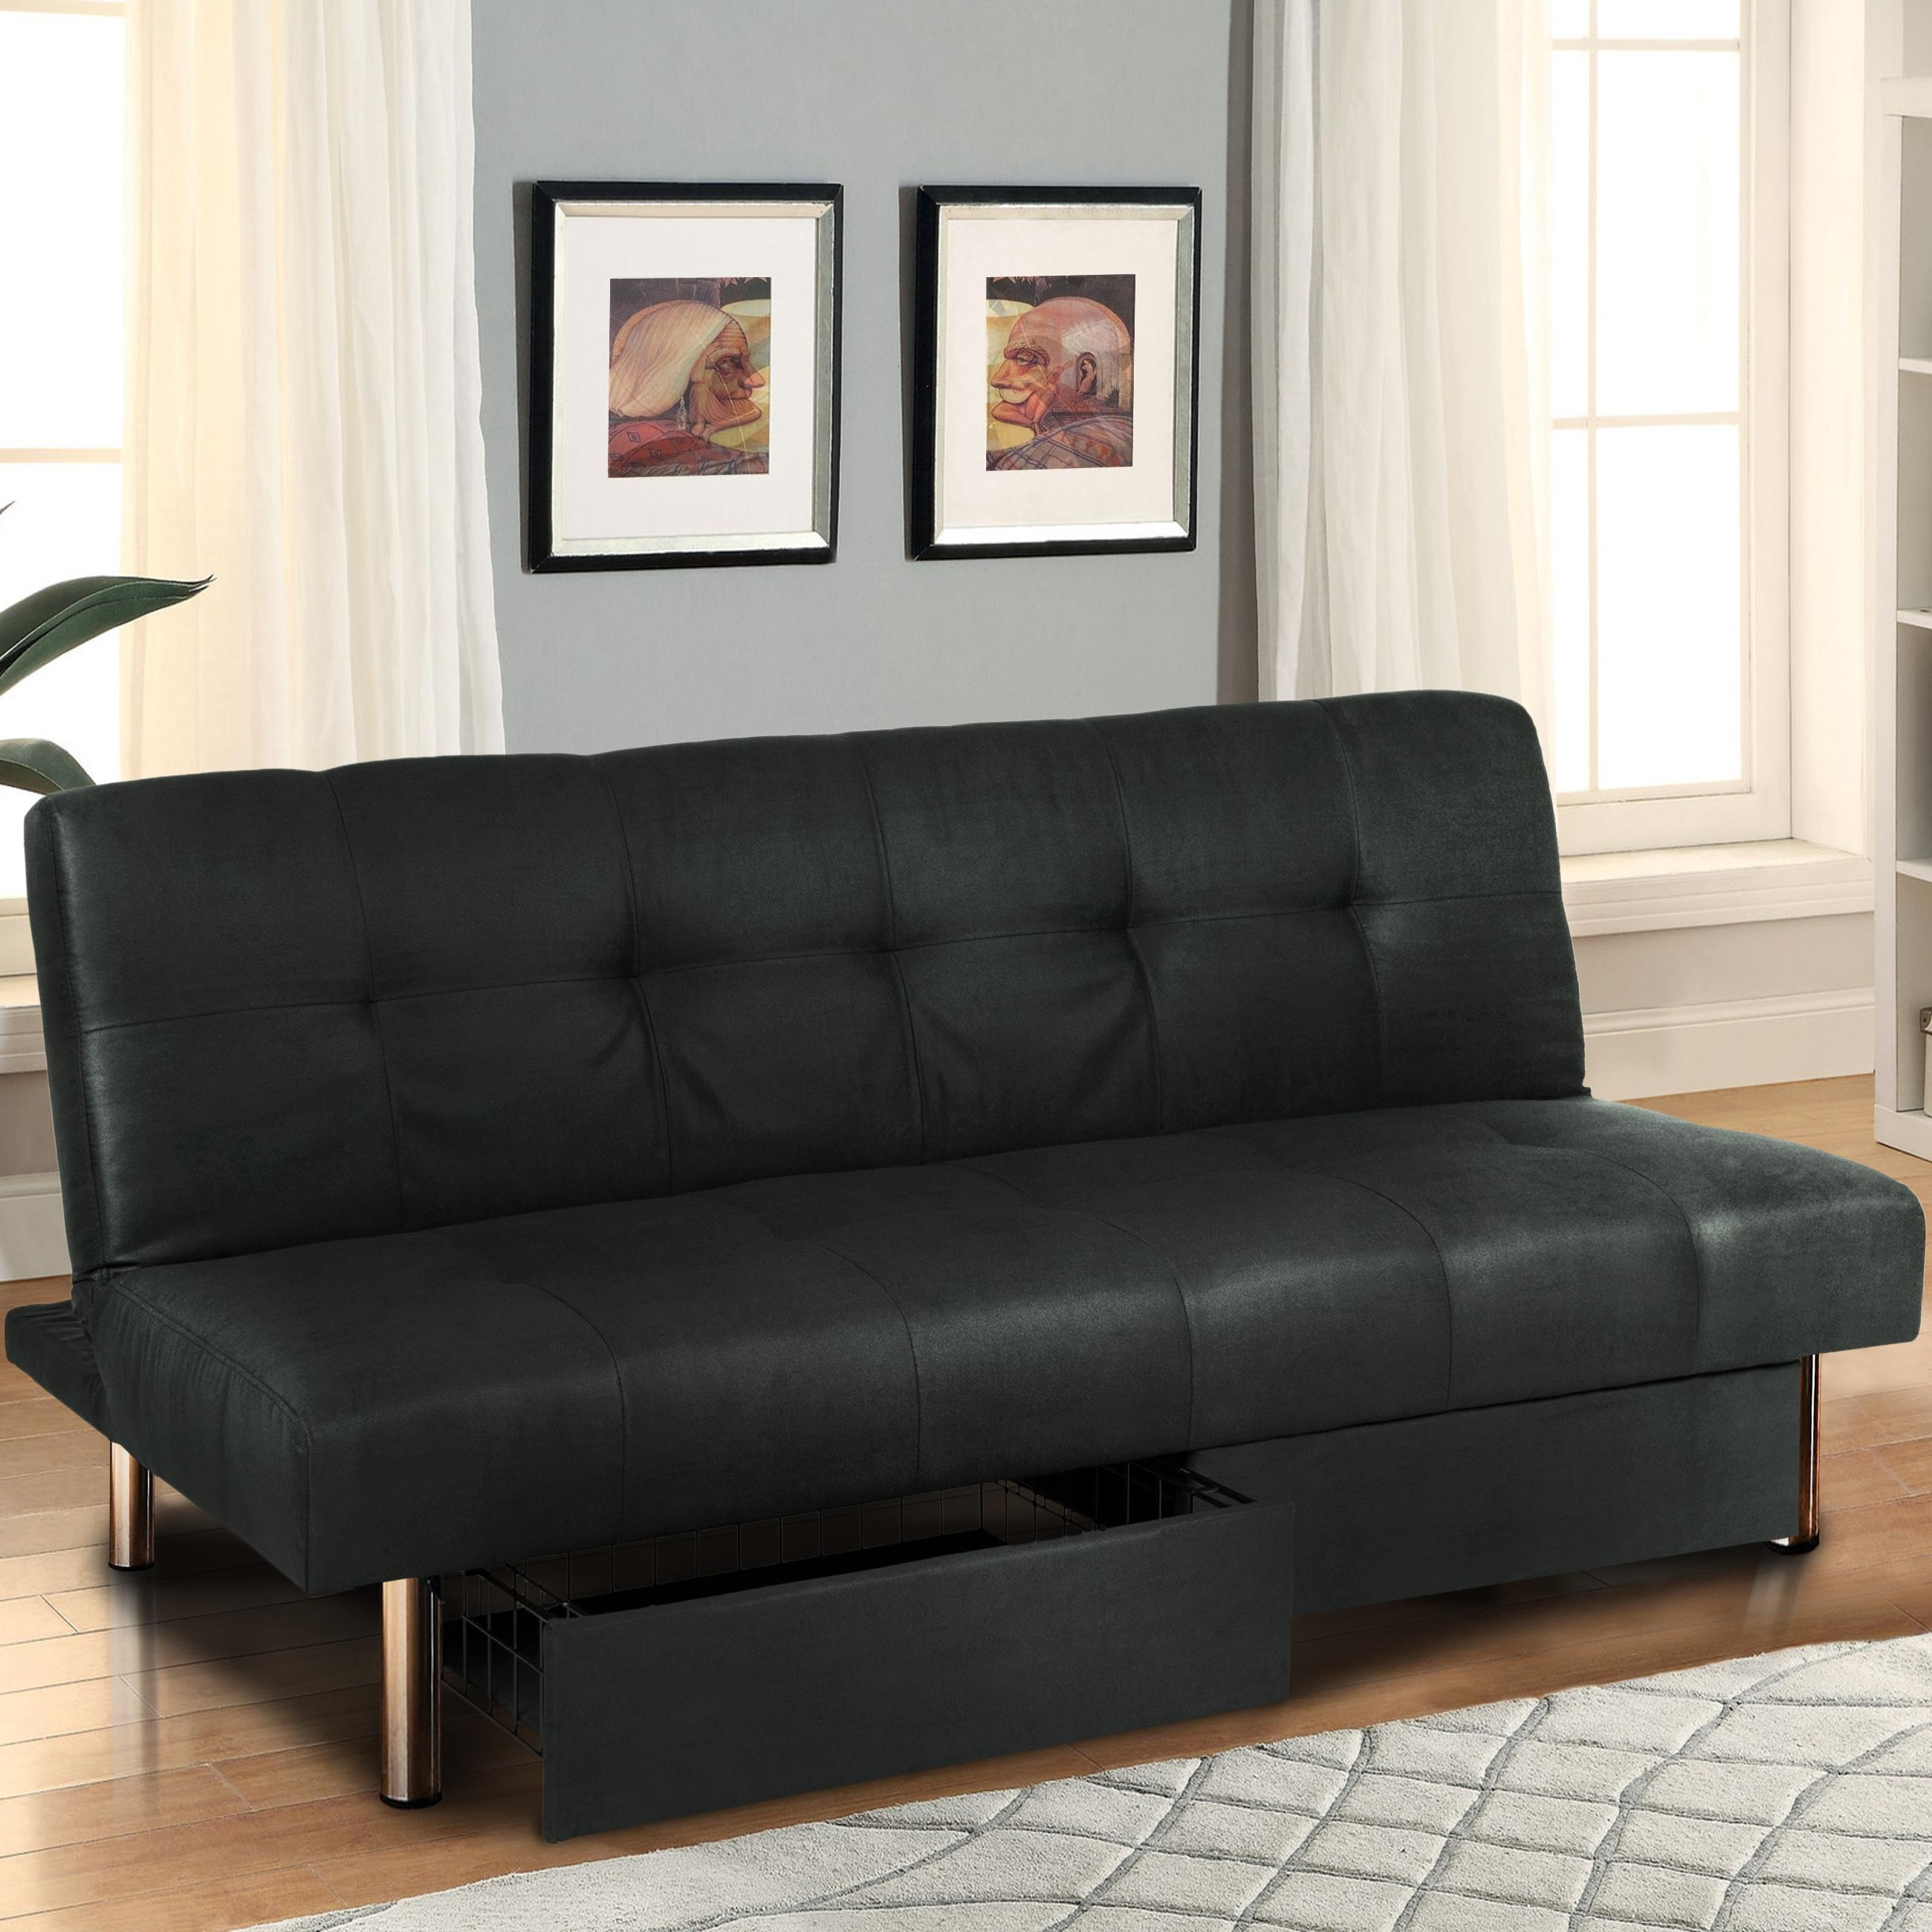 Best Choice Products Modern Entertainment Futon Sofa Bed Fold Up Regarding Convertible Futon Sofa Beds (Image 4 of 20)